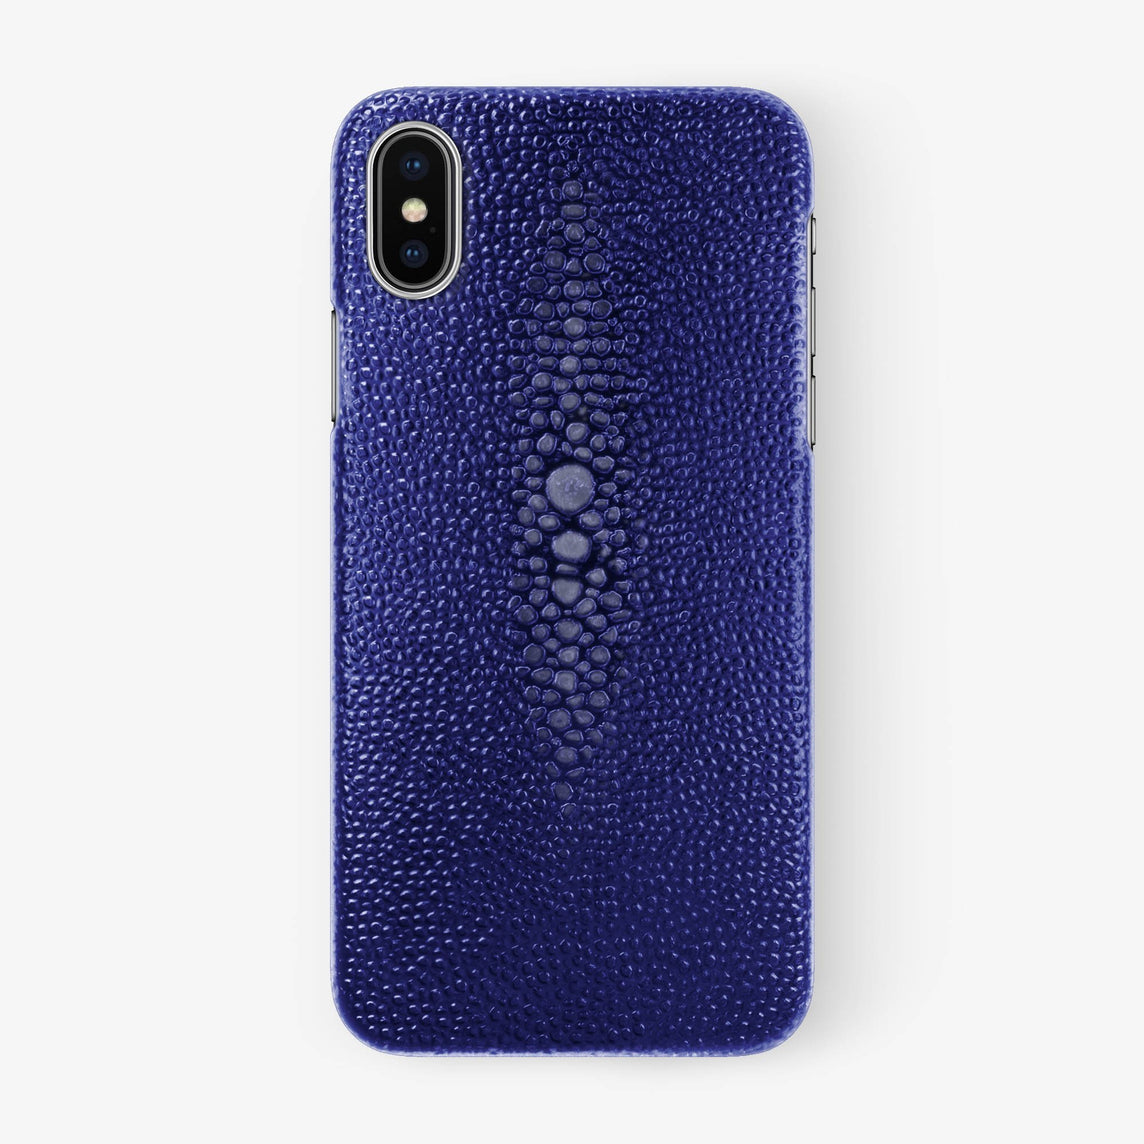 Stingray Case iPhone Xs Max | Blue - Stainless Steel